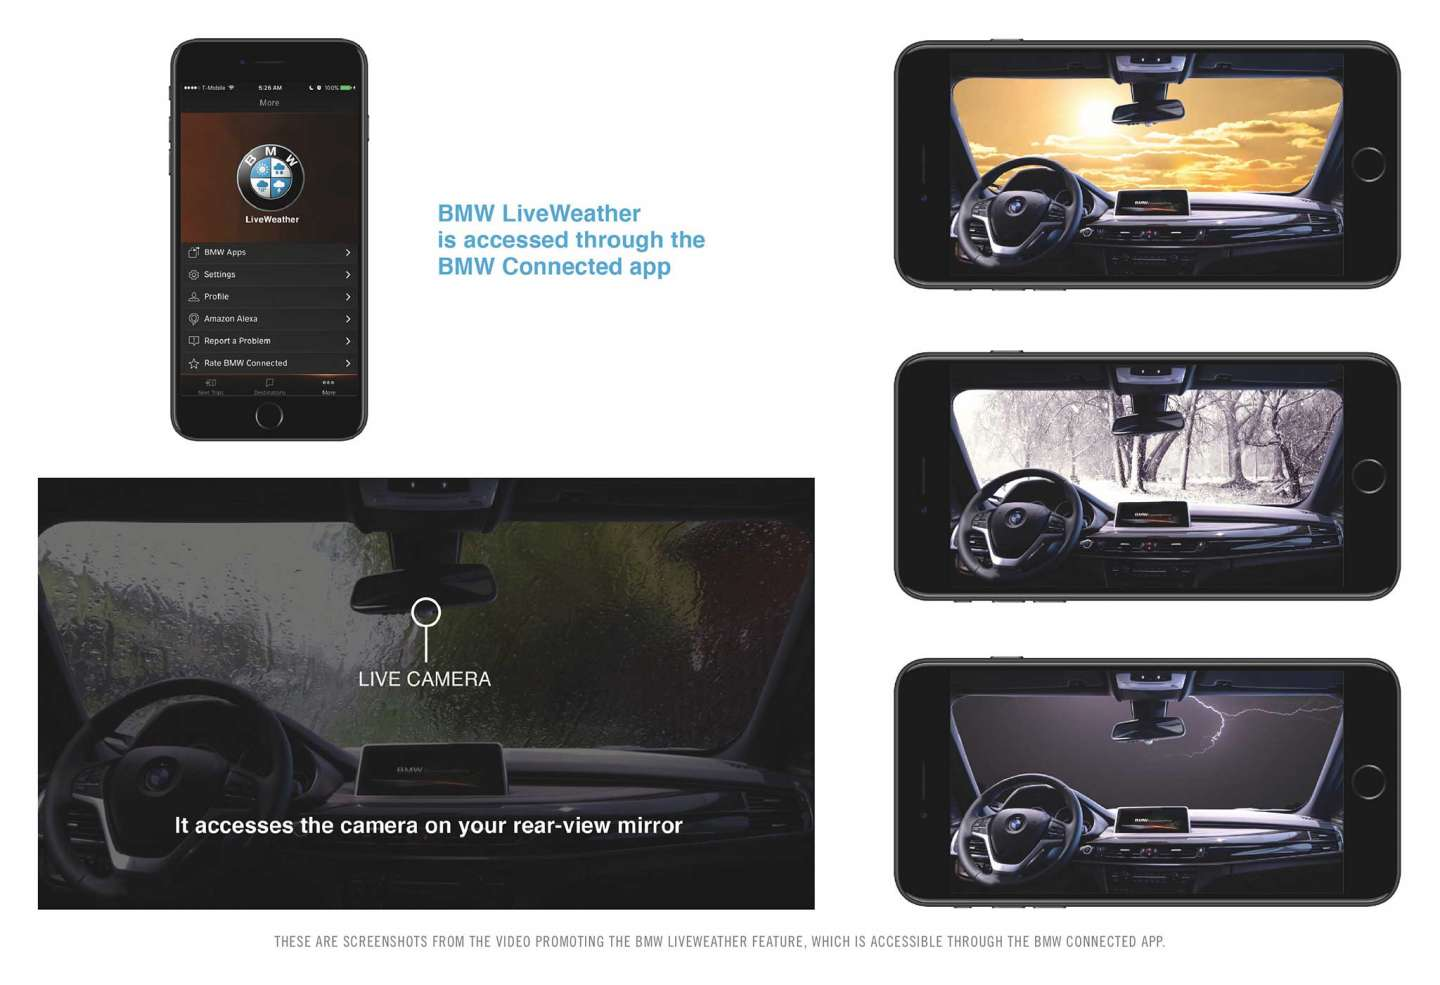 BMW LiveWeather by Seona Kim & Josi Matson – SVA Design